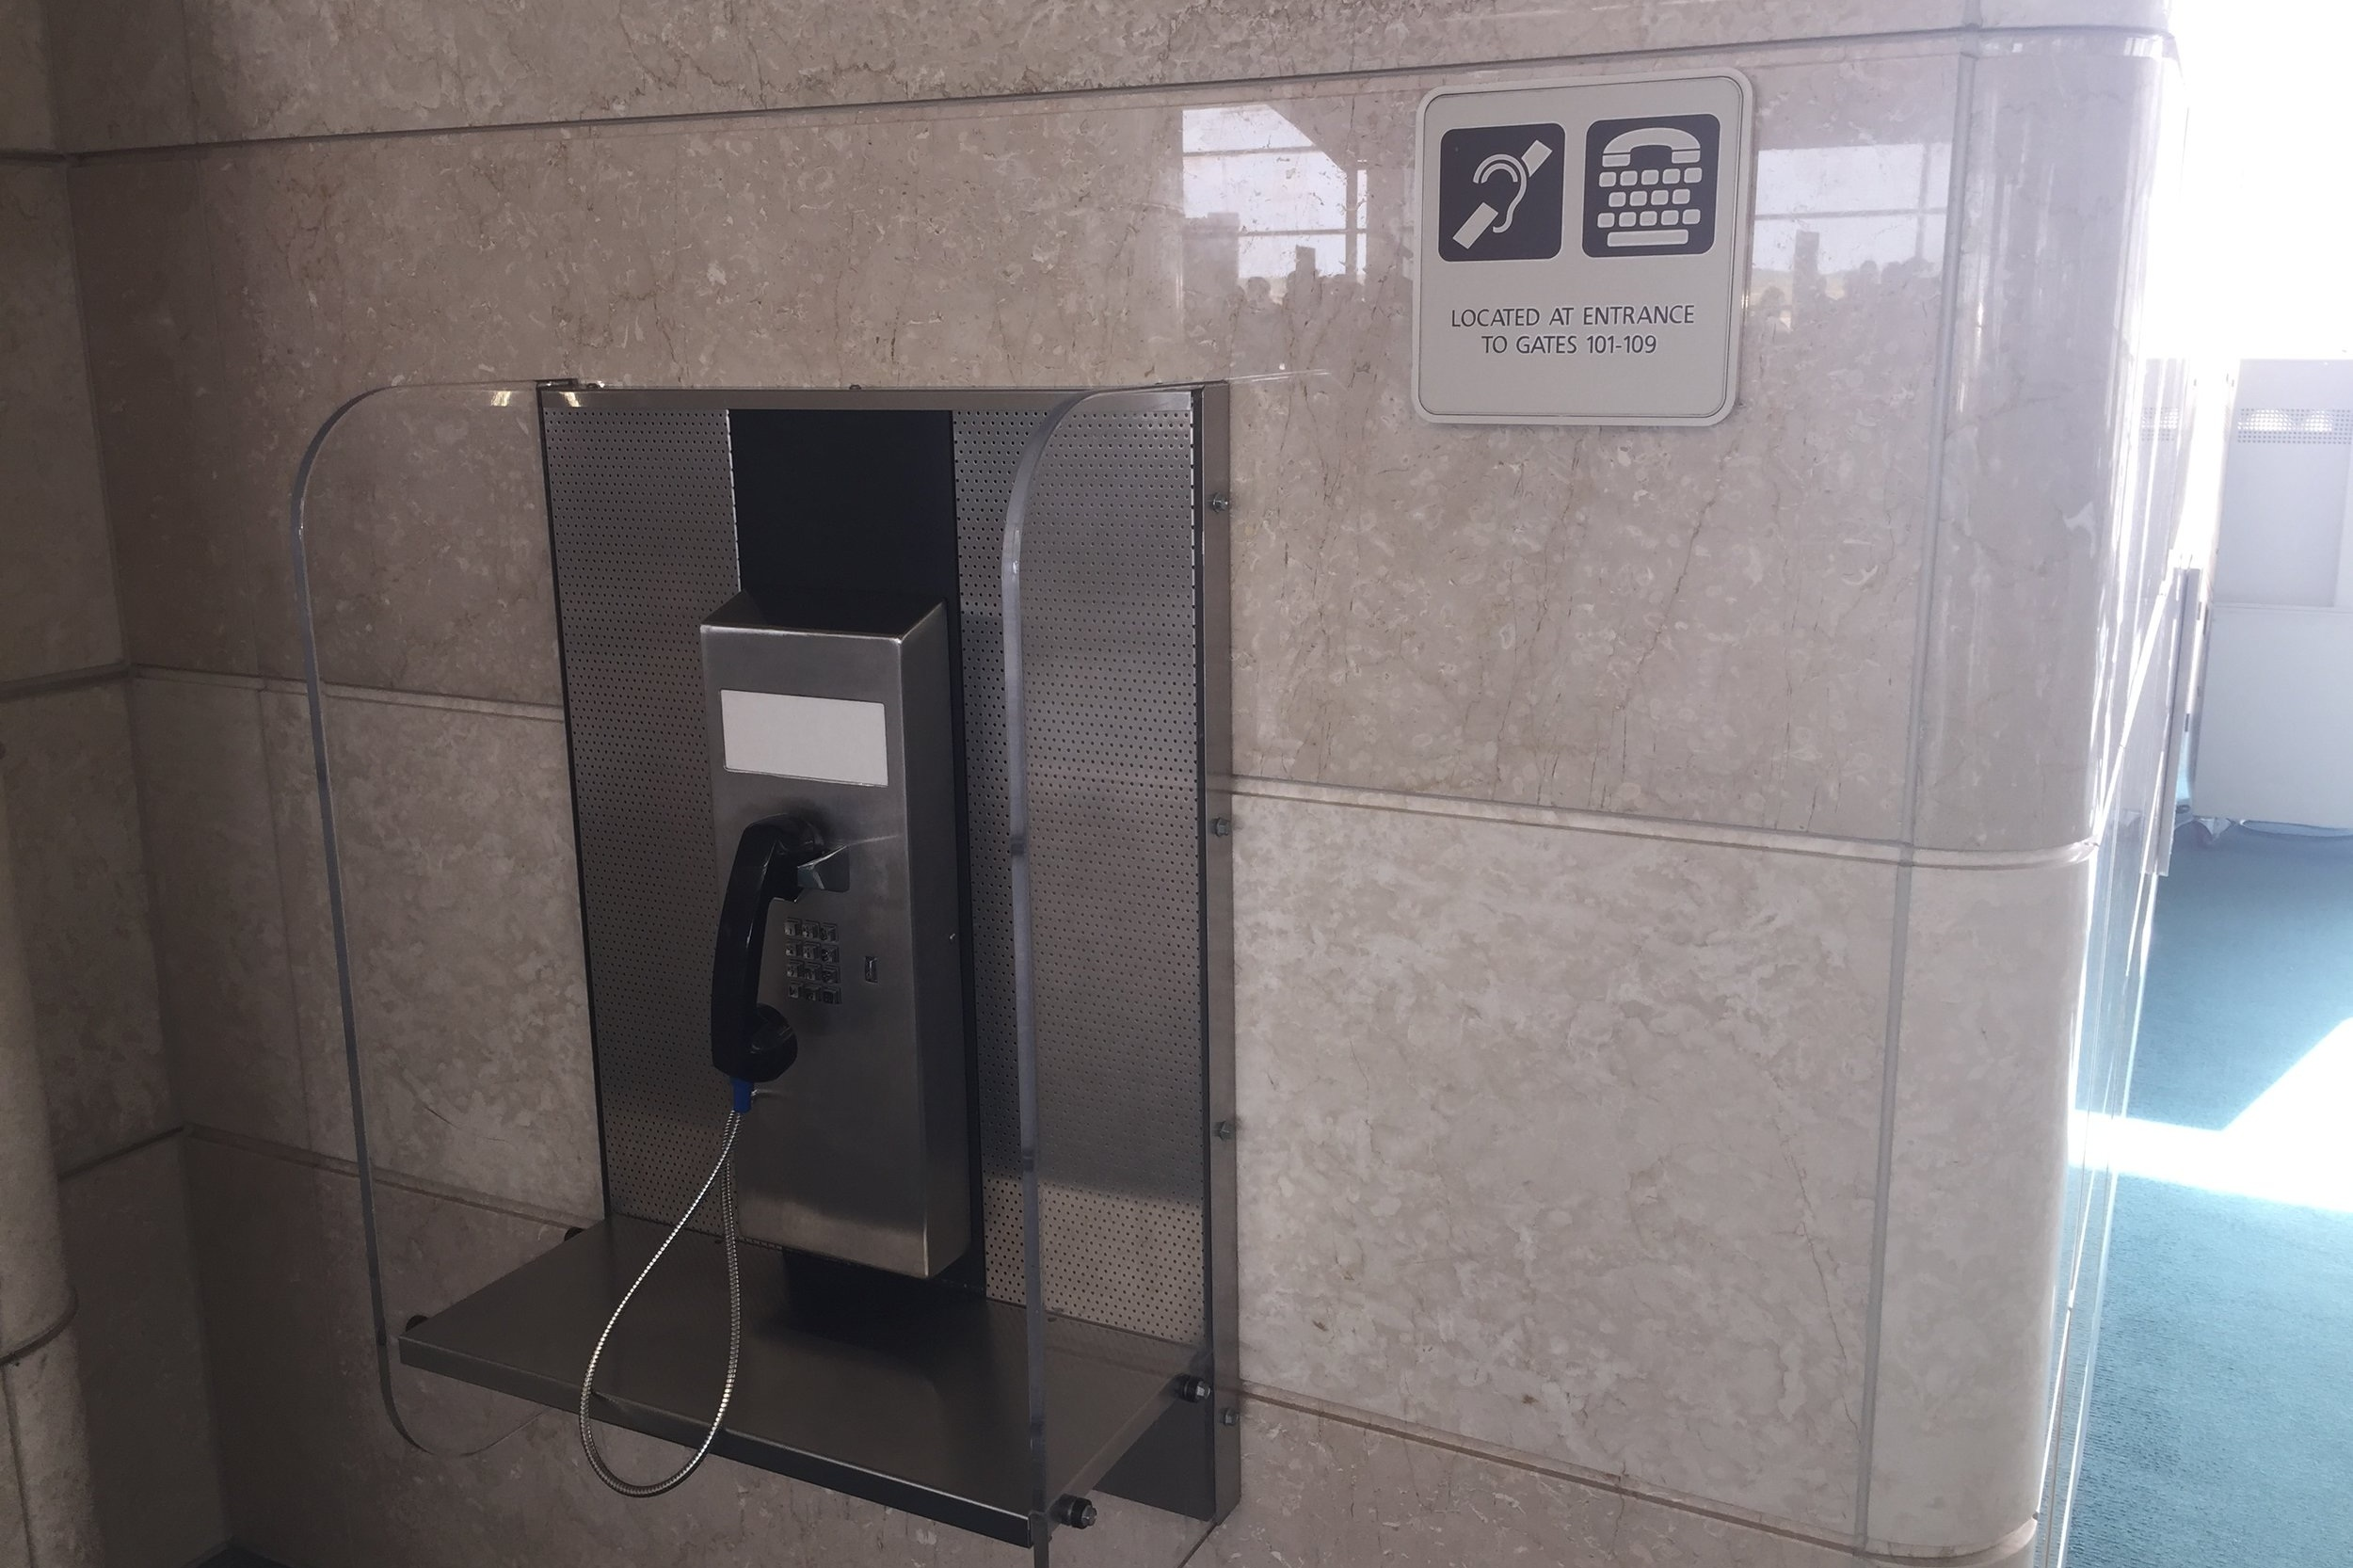 Courtesy Telephone in Orlando Airport with sign for ADA phone installation